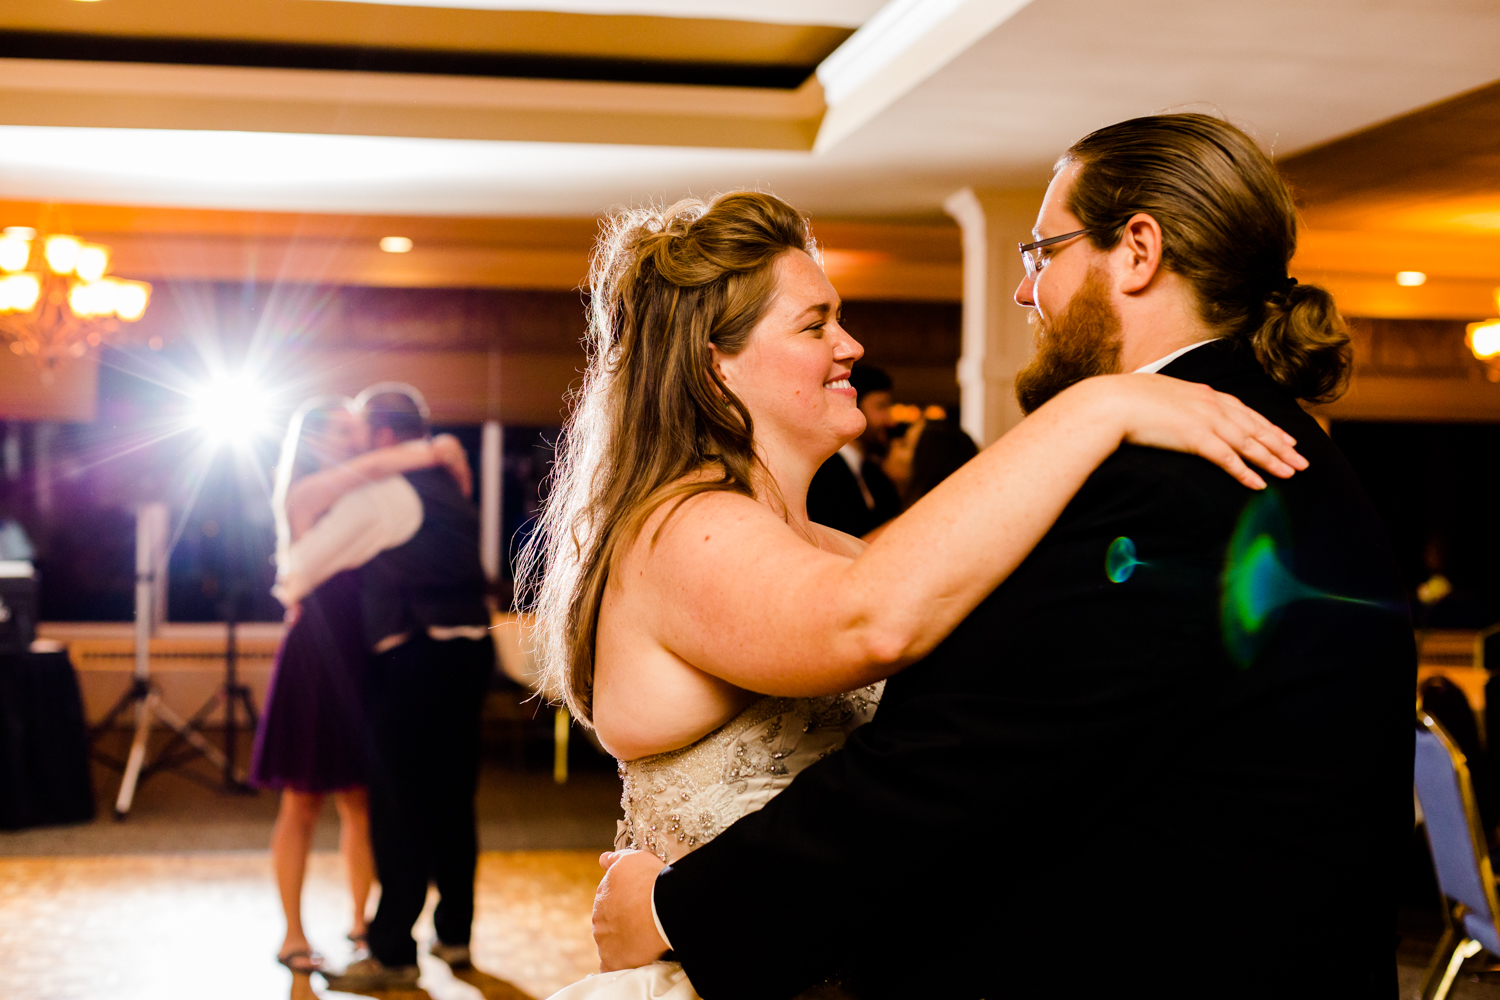 Happy bride and groom dancing image.